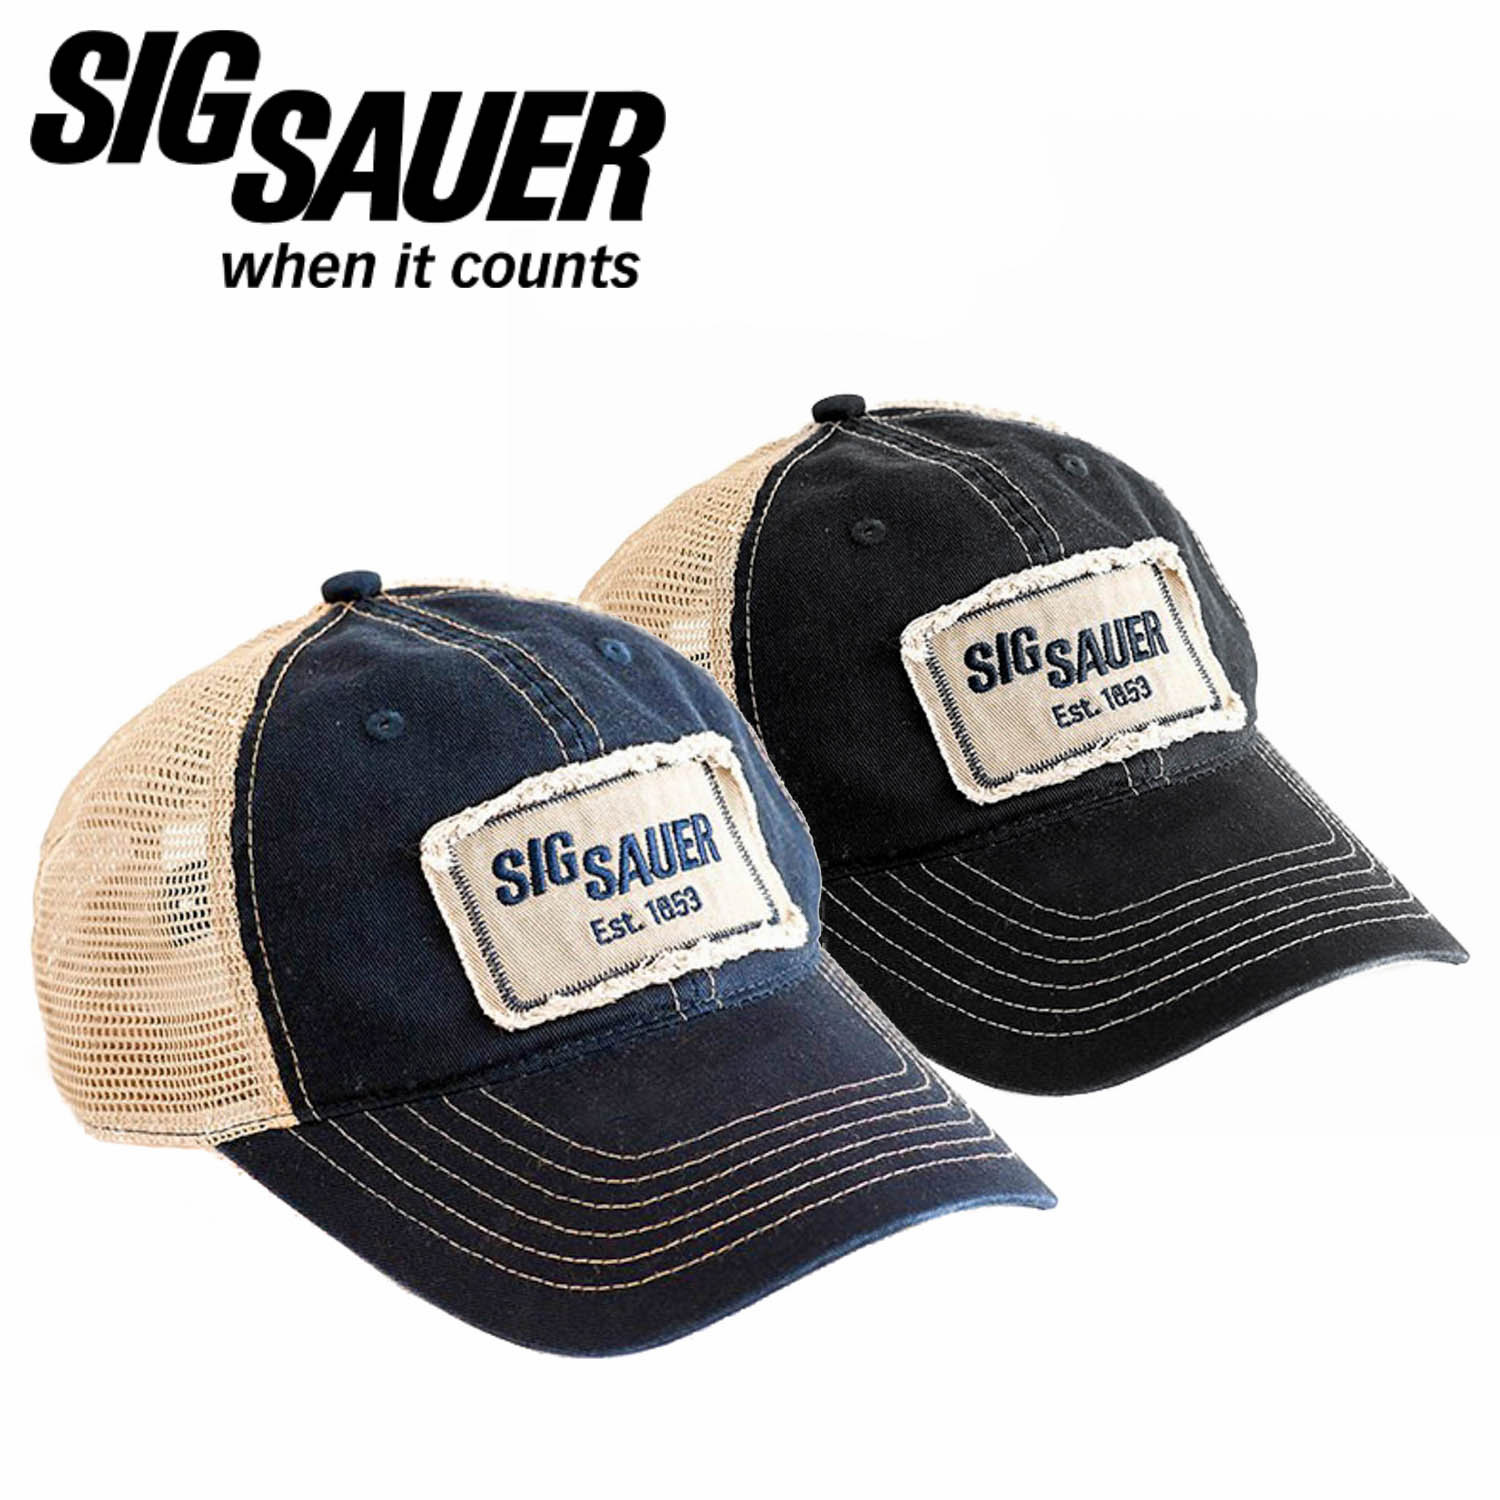 Sig Sauer Unstructured Trucker Hat with Patch: Midwest Gun Works